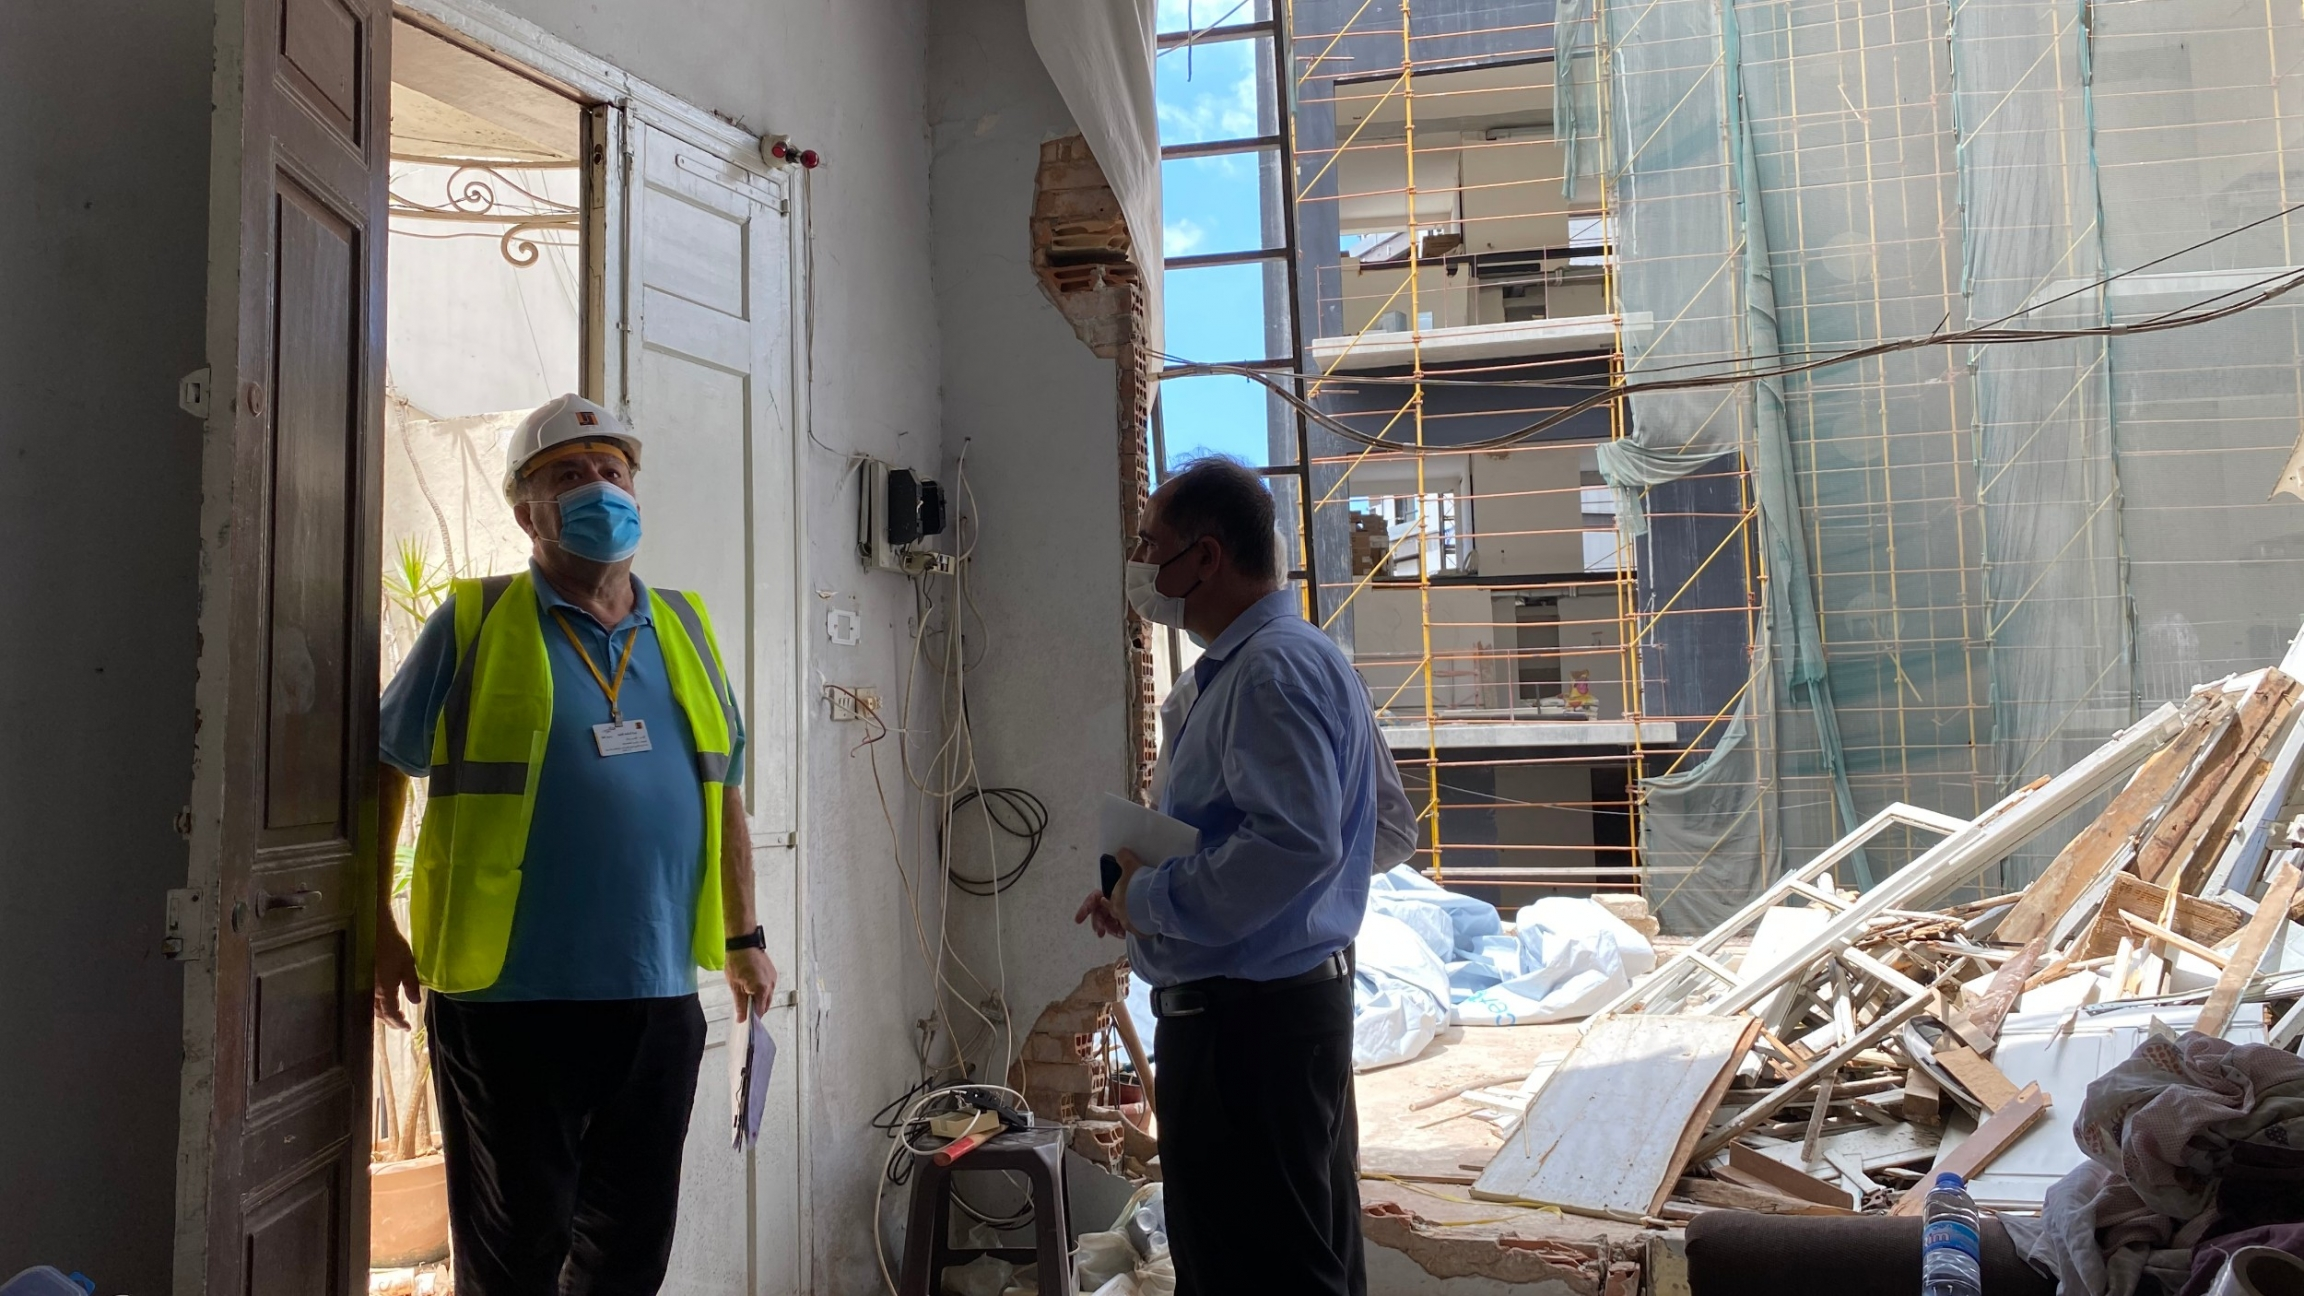 Henri's son Joseph greets an engineer who came tosurvey the damage at the Azar family home in Beirut's Mar Mikhaëldistrict.